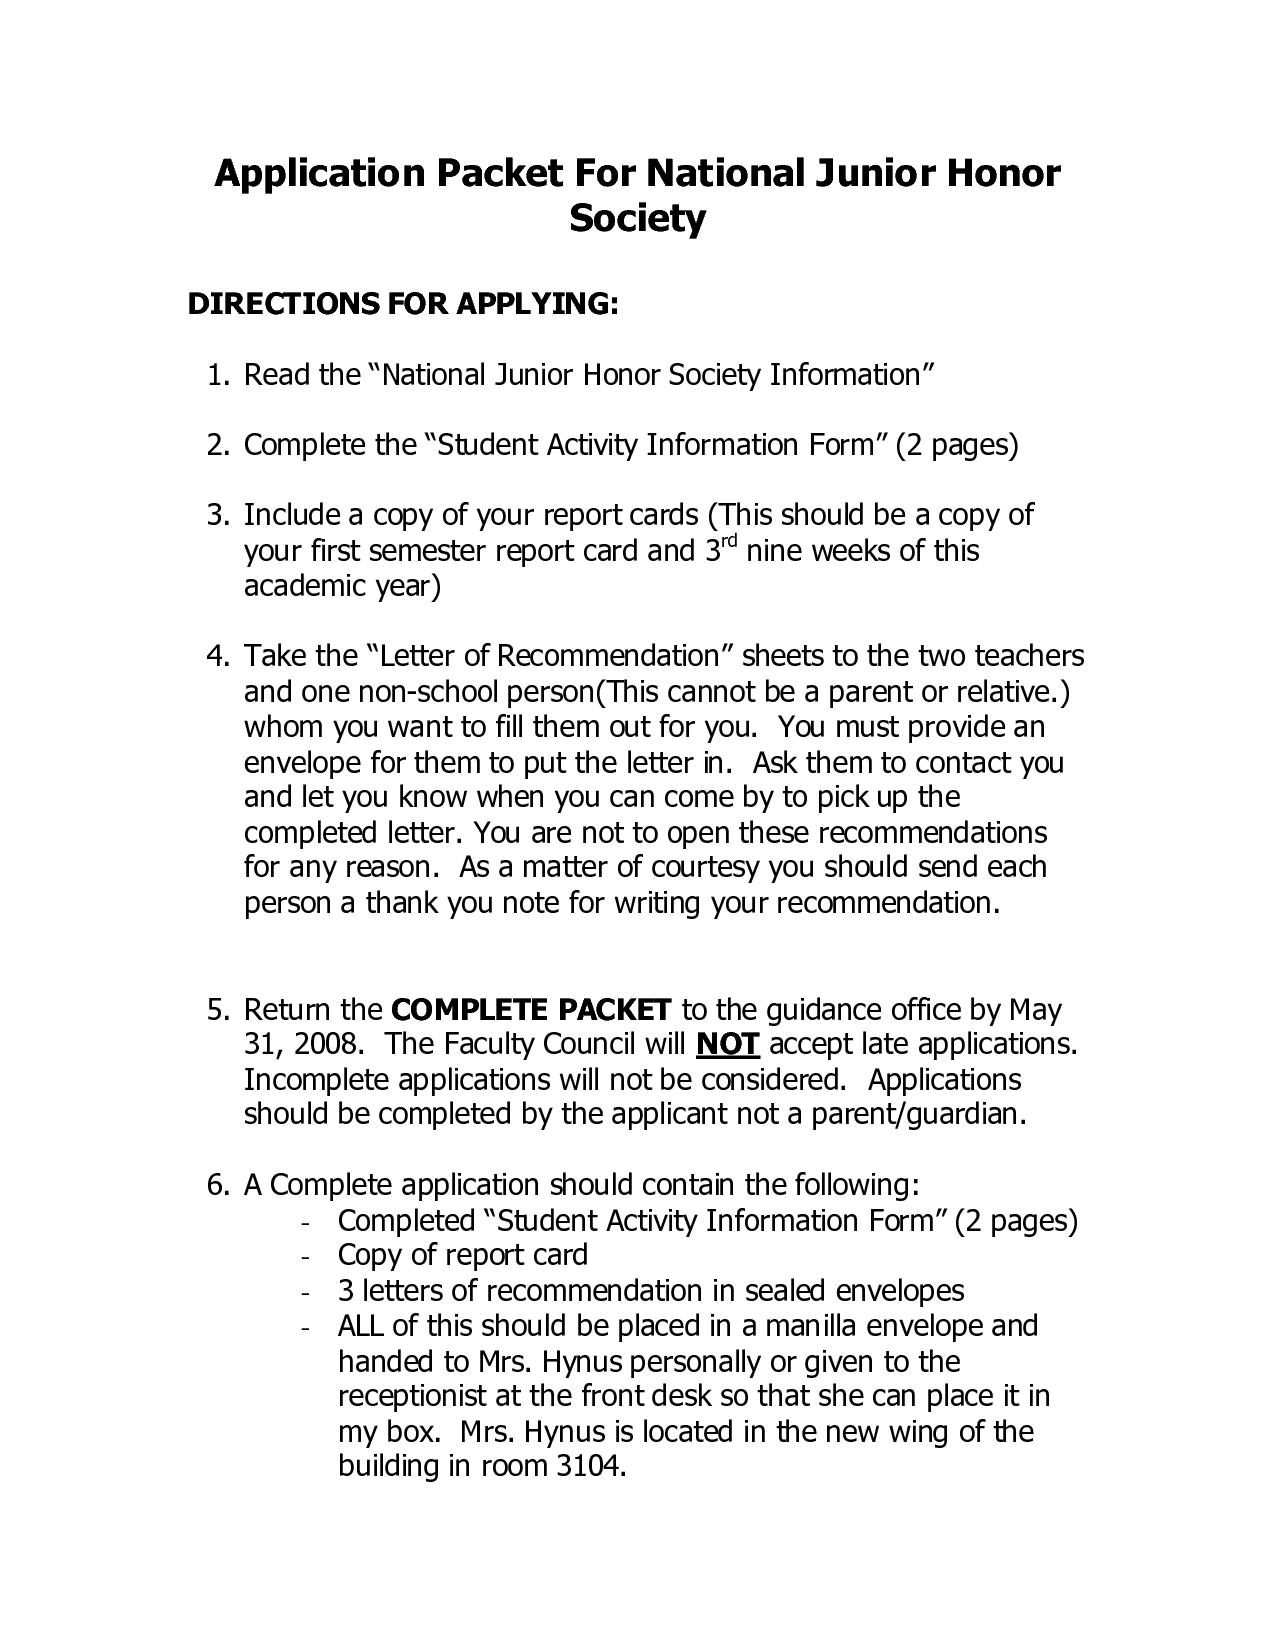 national honor society application essay example national honor how to write a national honor society application essay american math worksheet national junior honor society